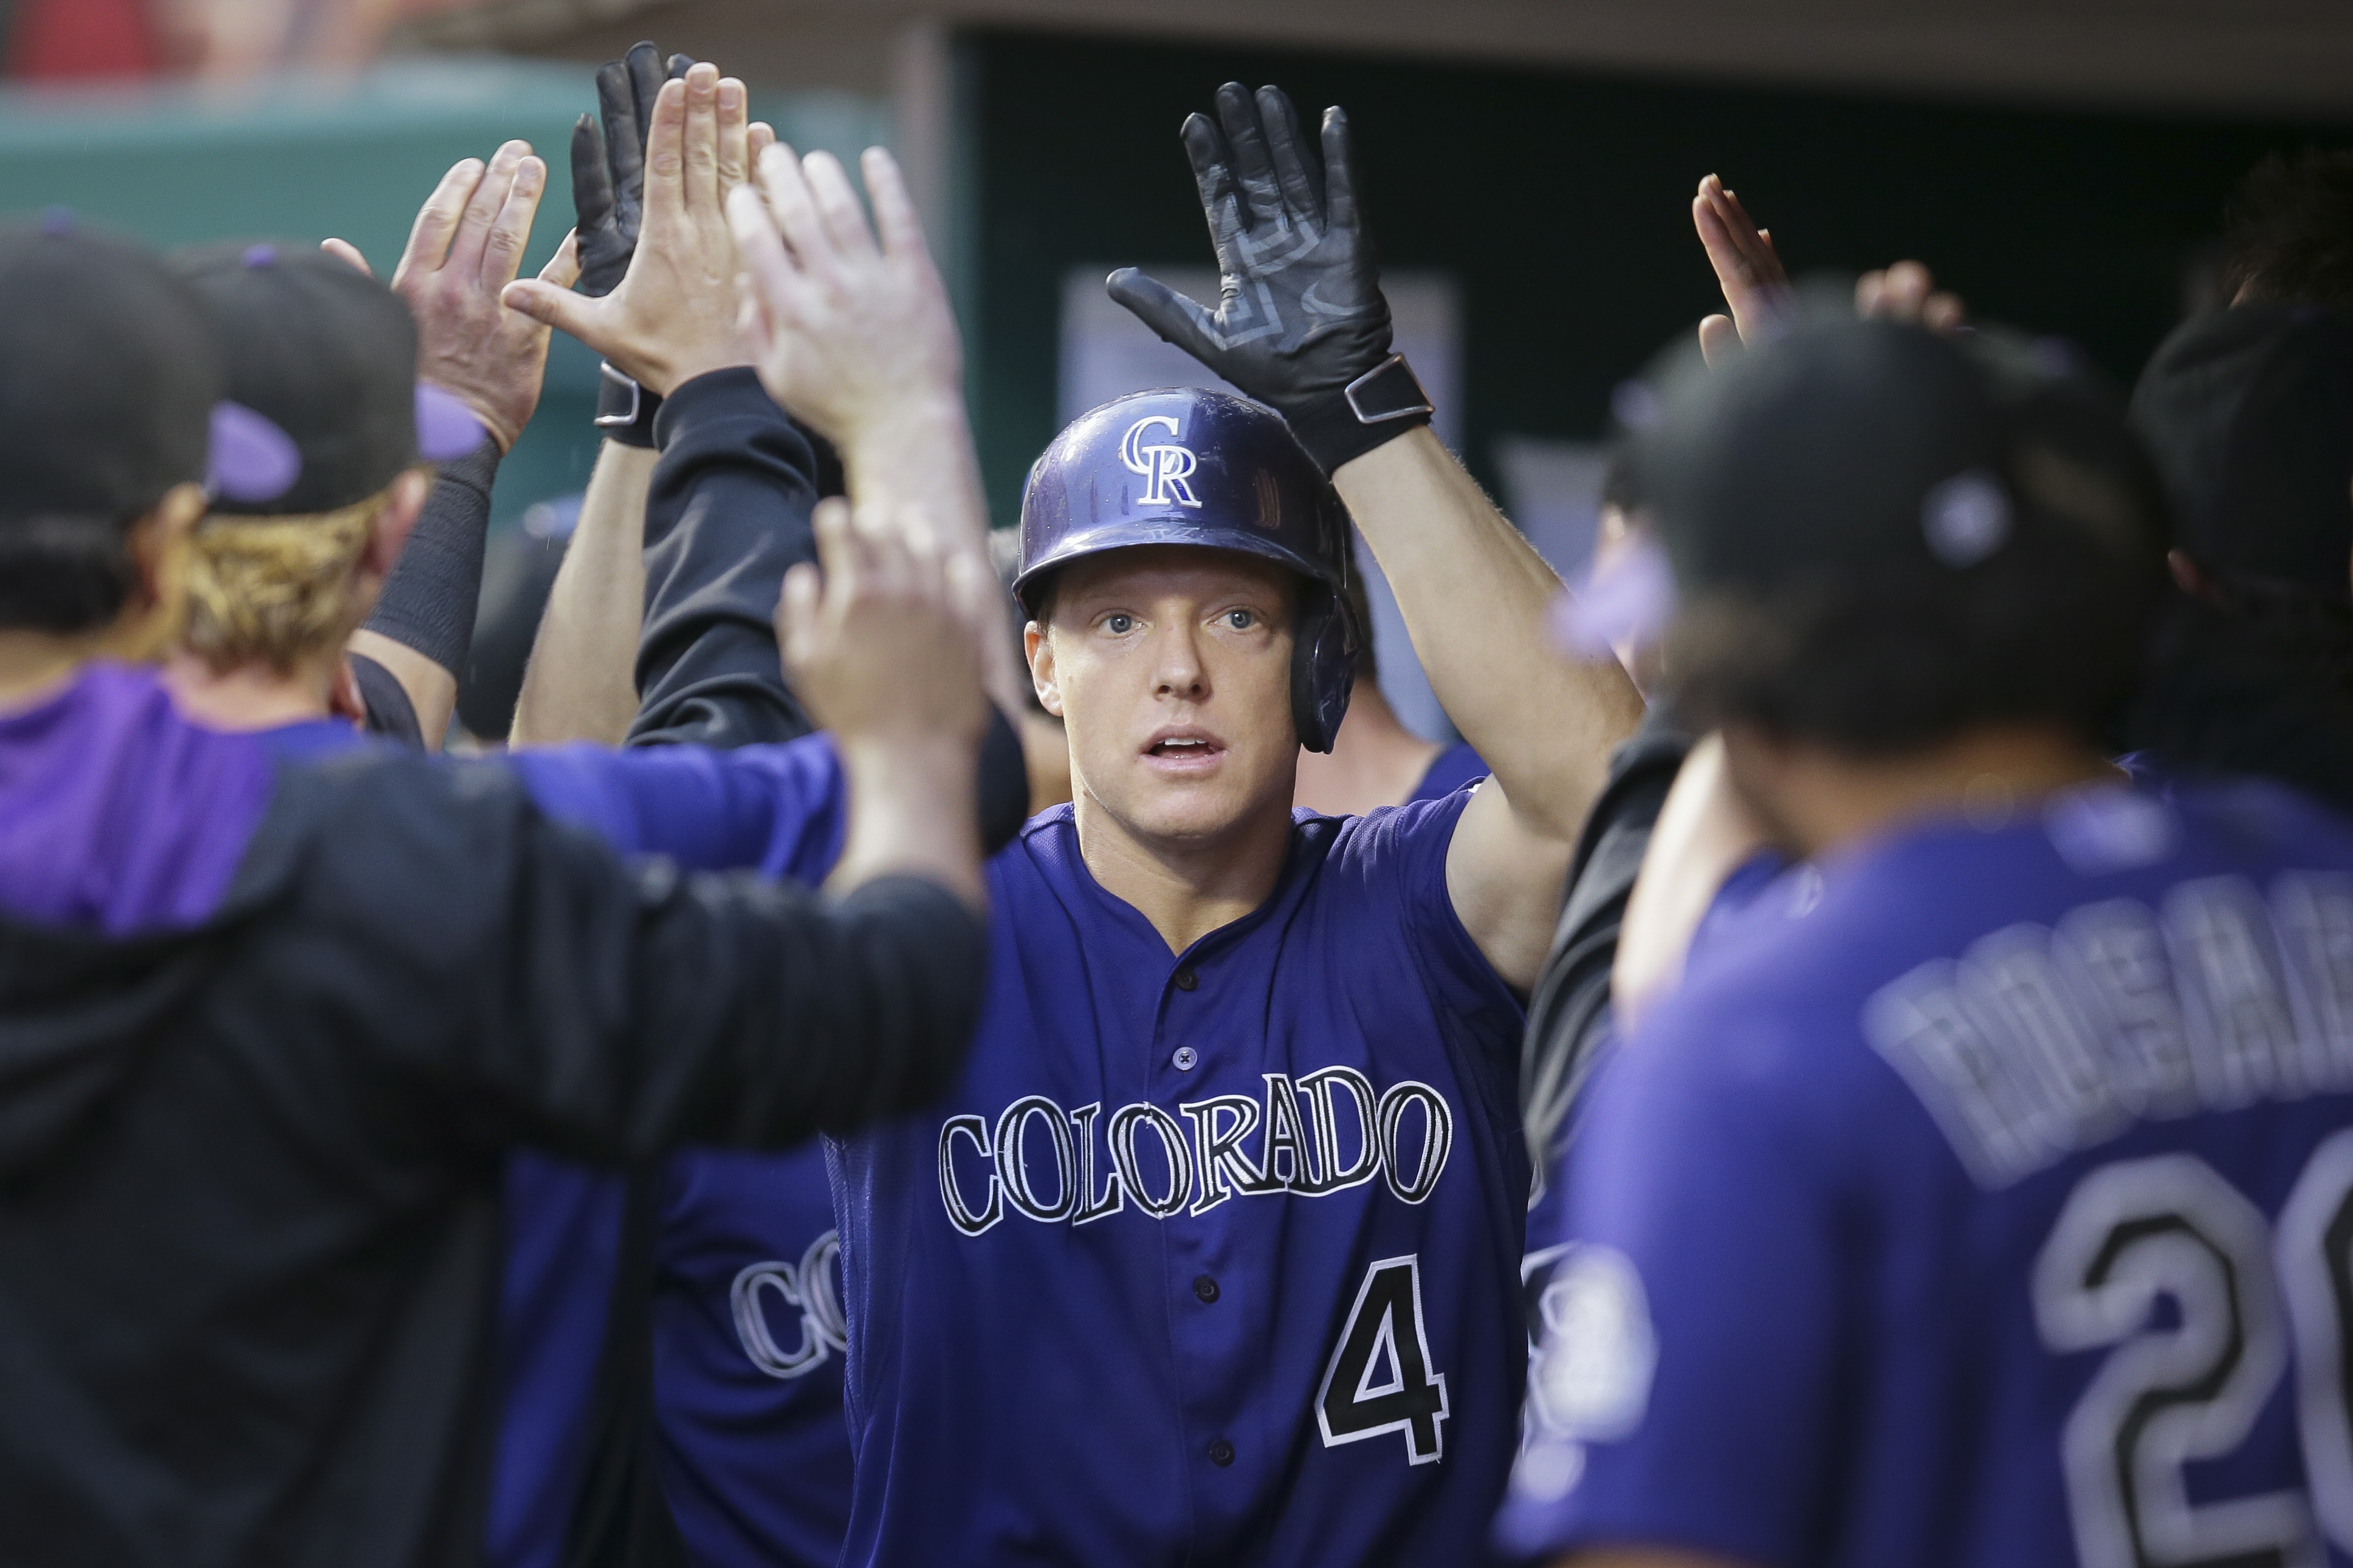 Colorado Rockies' Nick Hundley (4) celebrates in the dugout after hitting a solo home run in the fifth inning of a baseball game against the Cincinnati Reds, Tuesday, May 26, 2015, in Cincinnati. (AP Photo/John Minchillo)